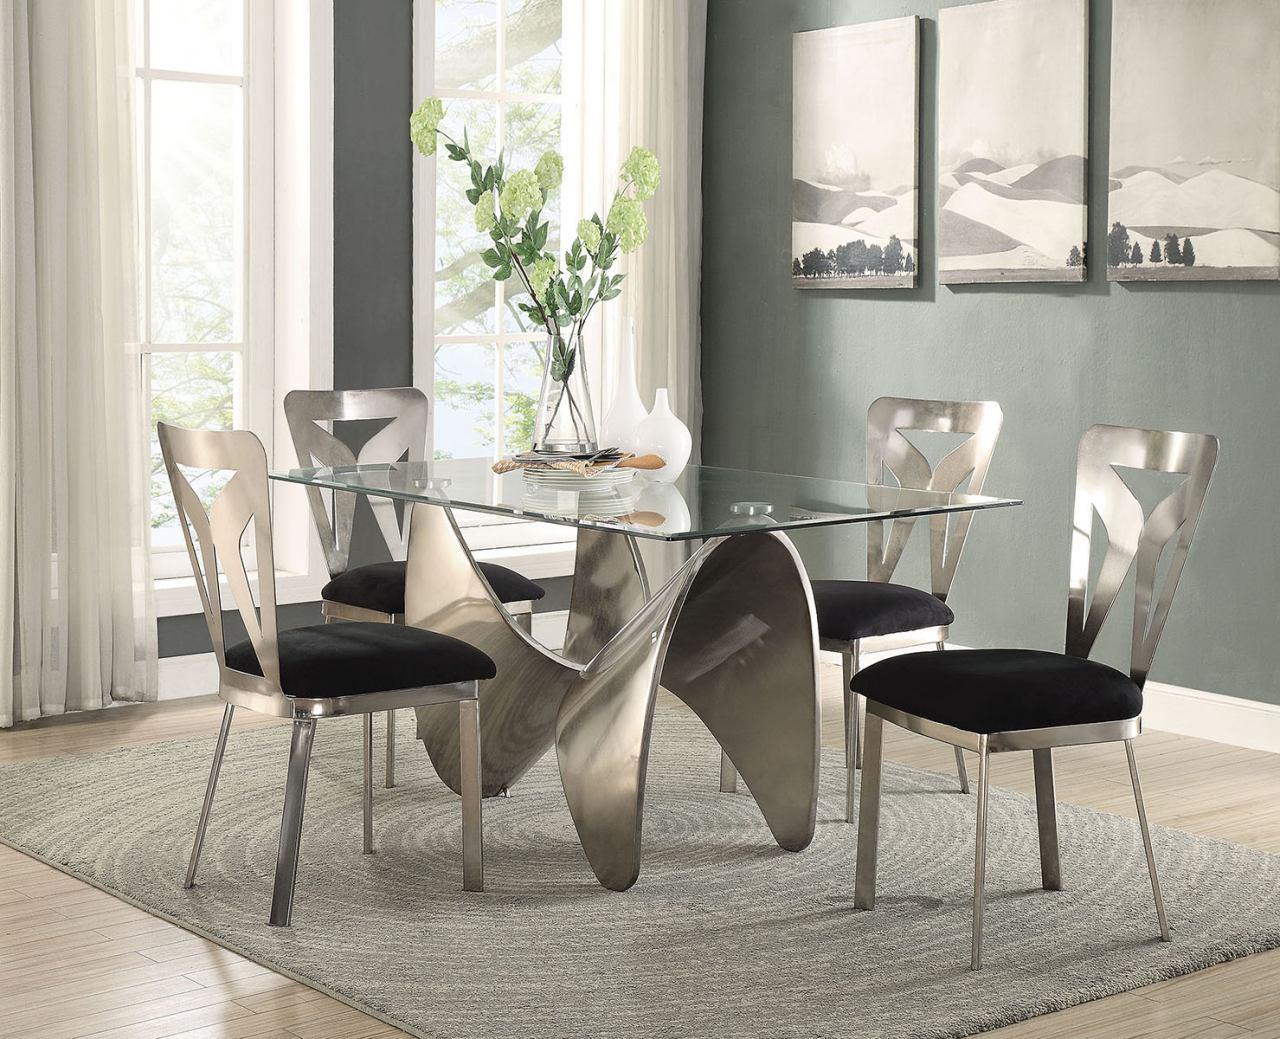 Acme Furniture Widforss 5pc Rectangular Dining Set in Antique Silver